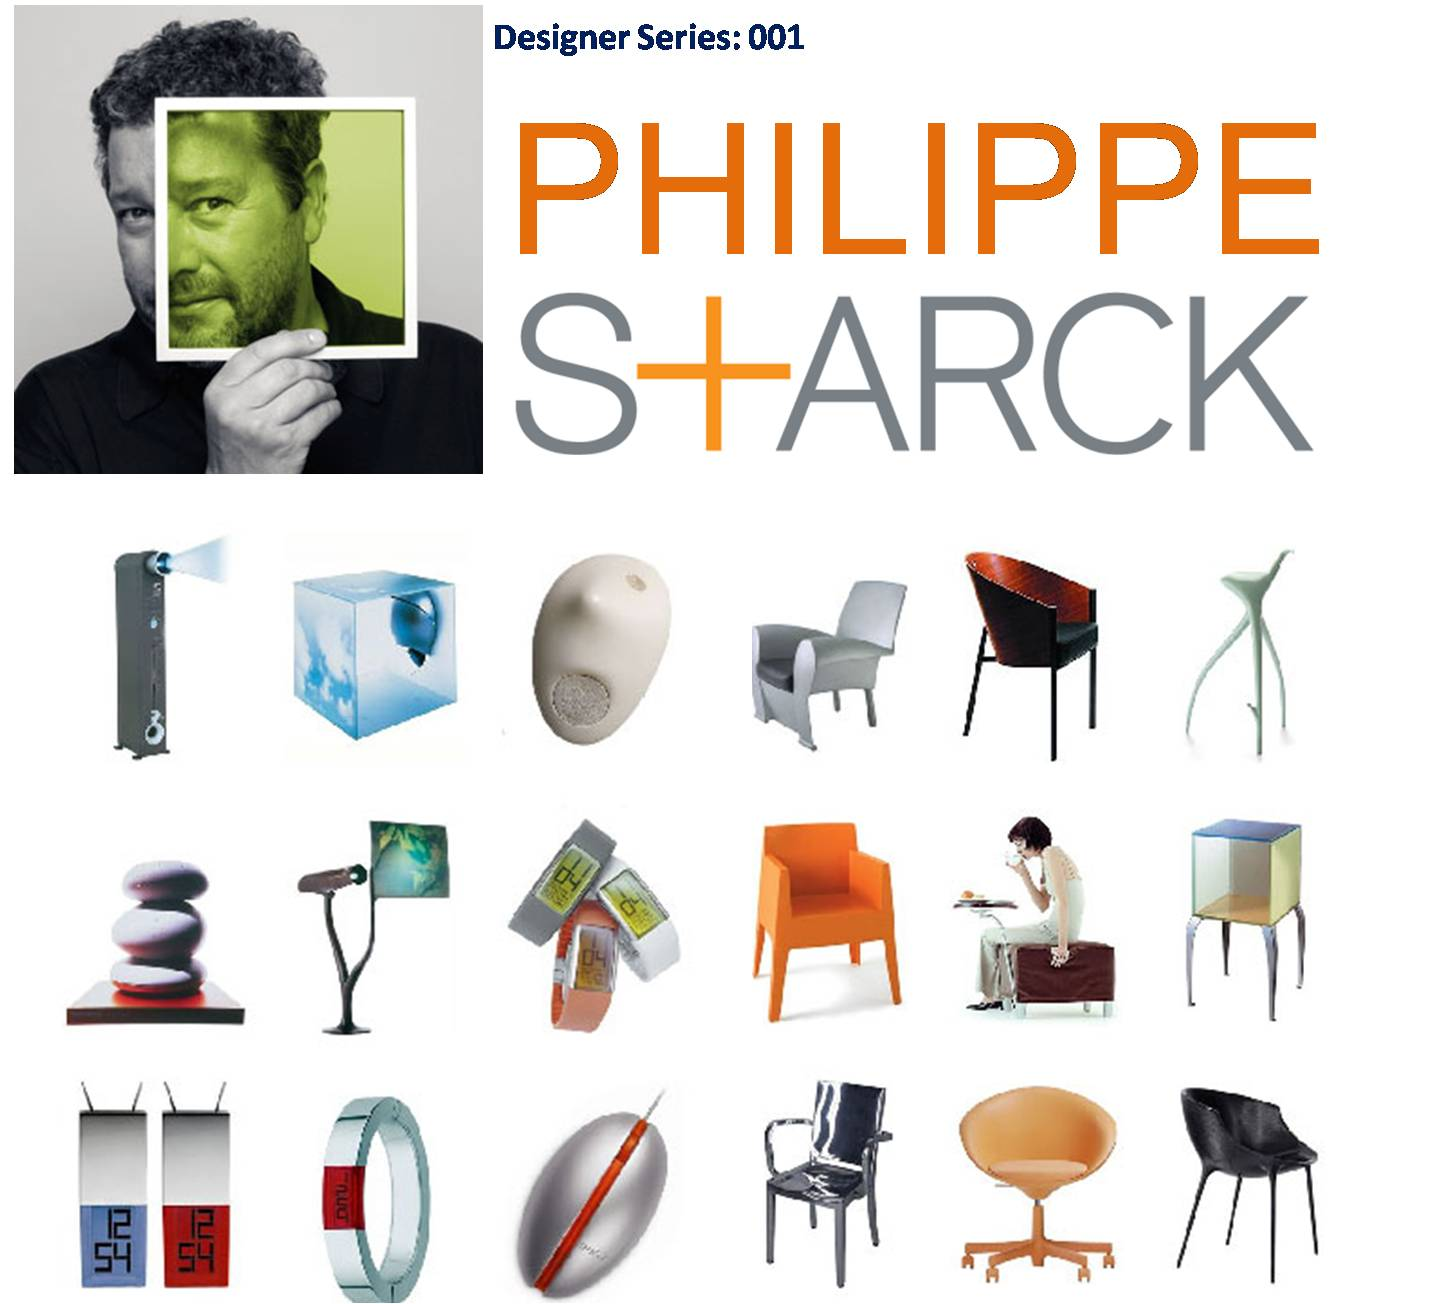 manila gawker designer series philippe starck. Black Bedroom Furniture Sets. Home Design Ideas